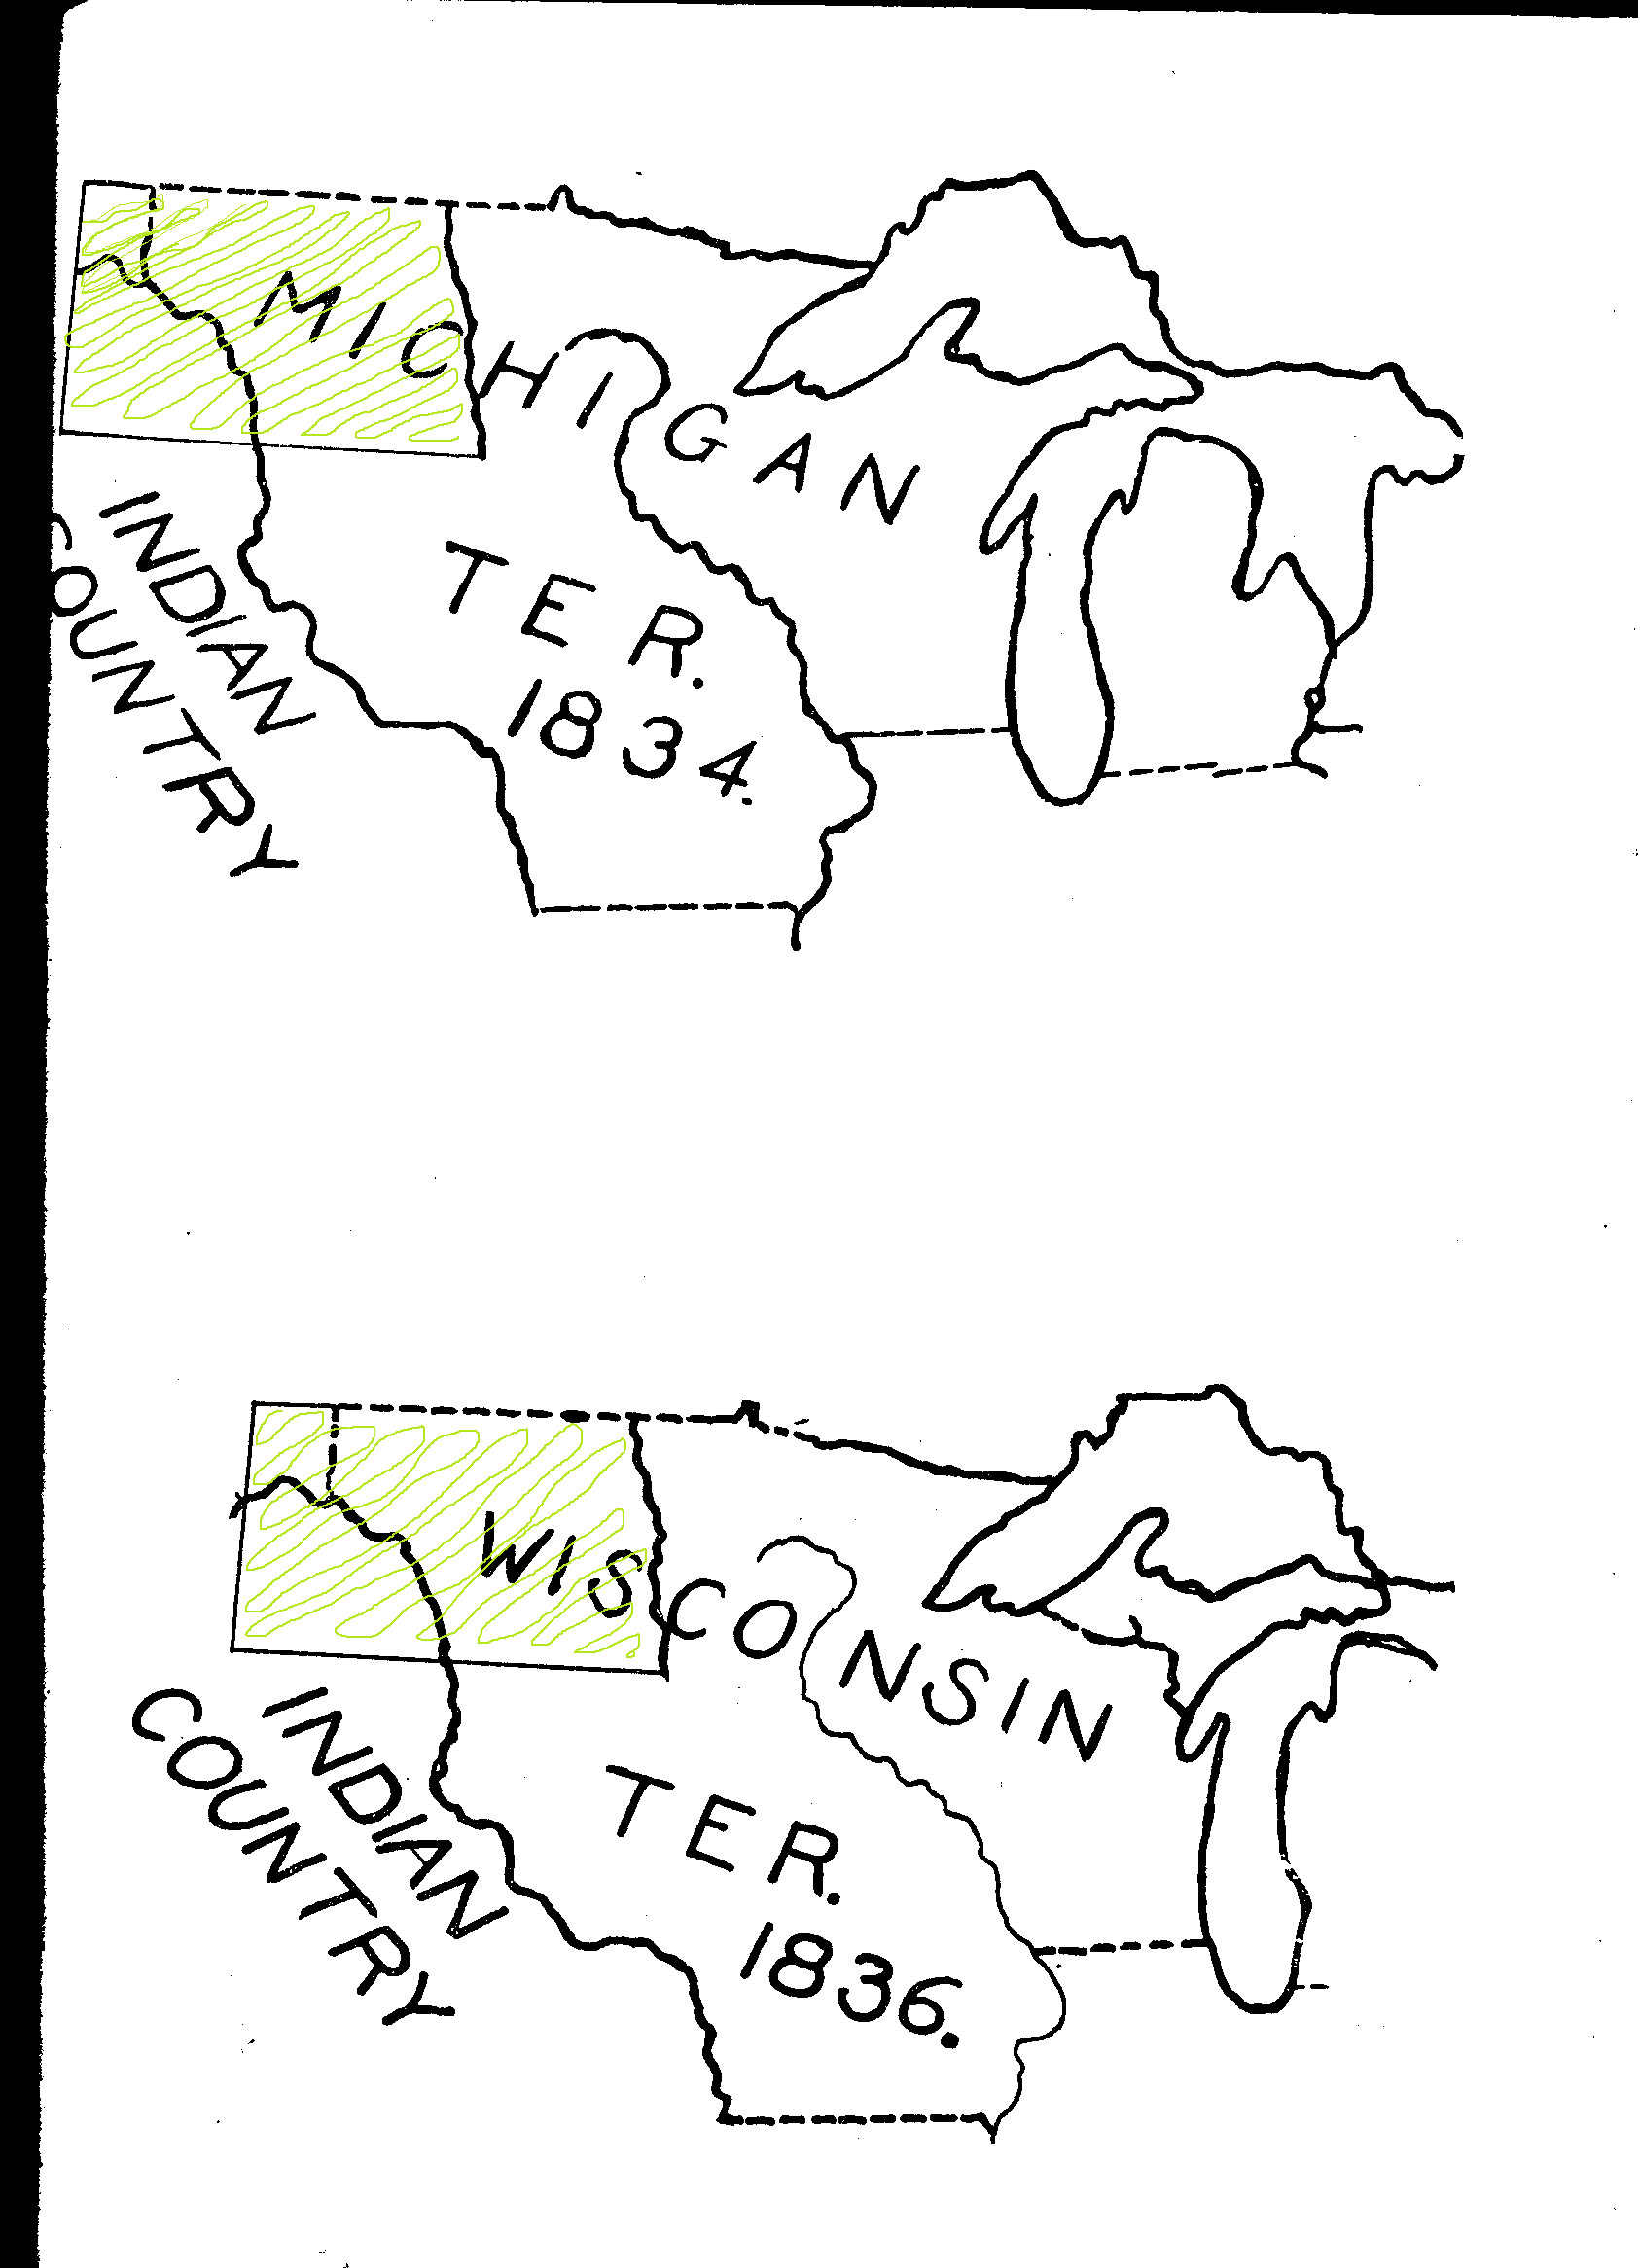 These two maps show how quickly territories took shape. As Michigan prepared to become a state (1837), the territory's western portion was re-assigned to Wisconsin.